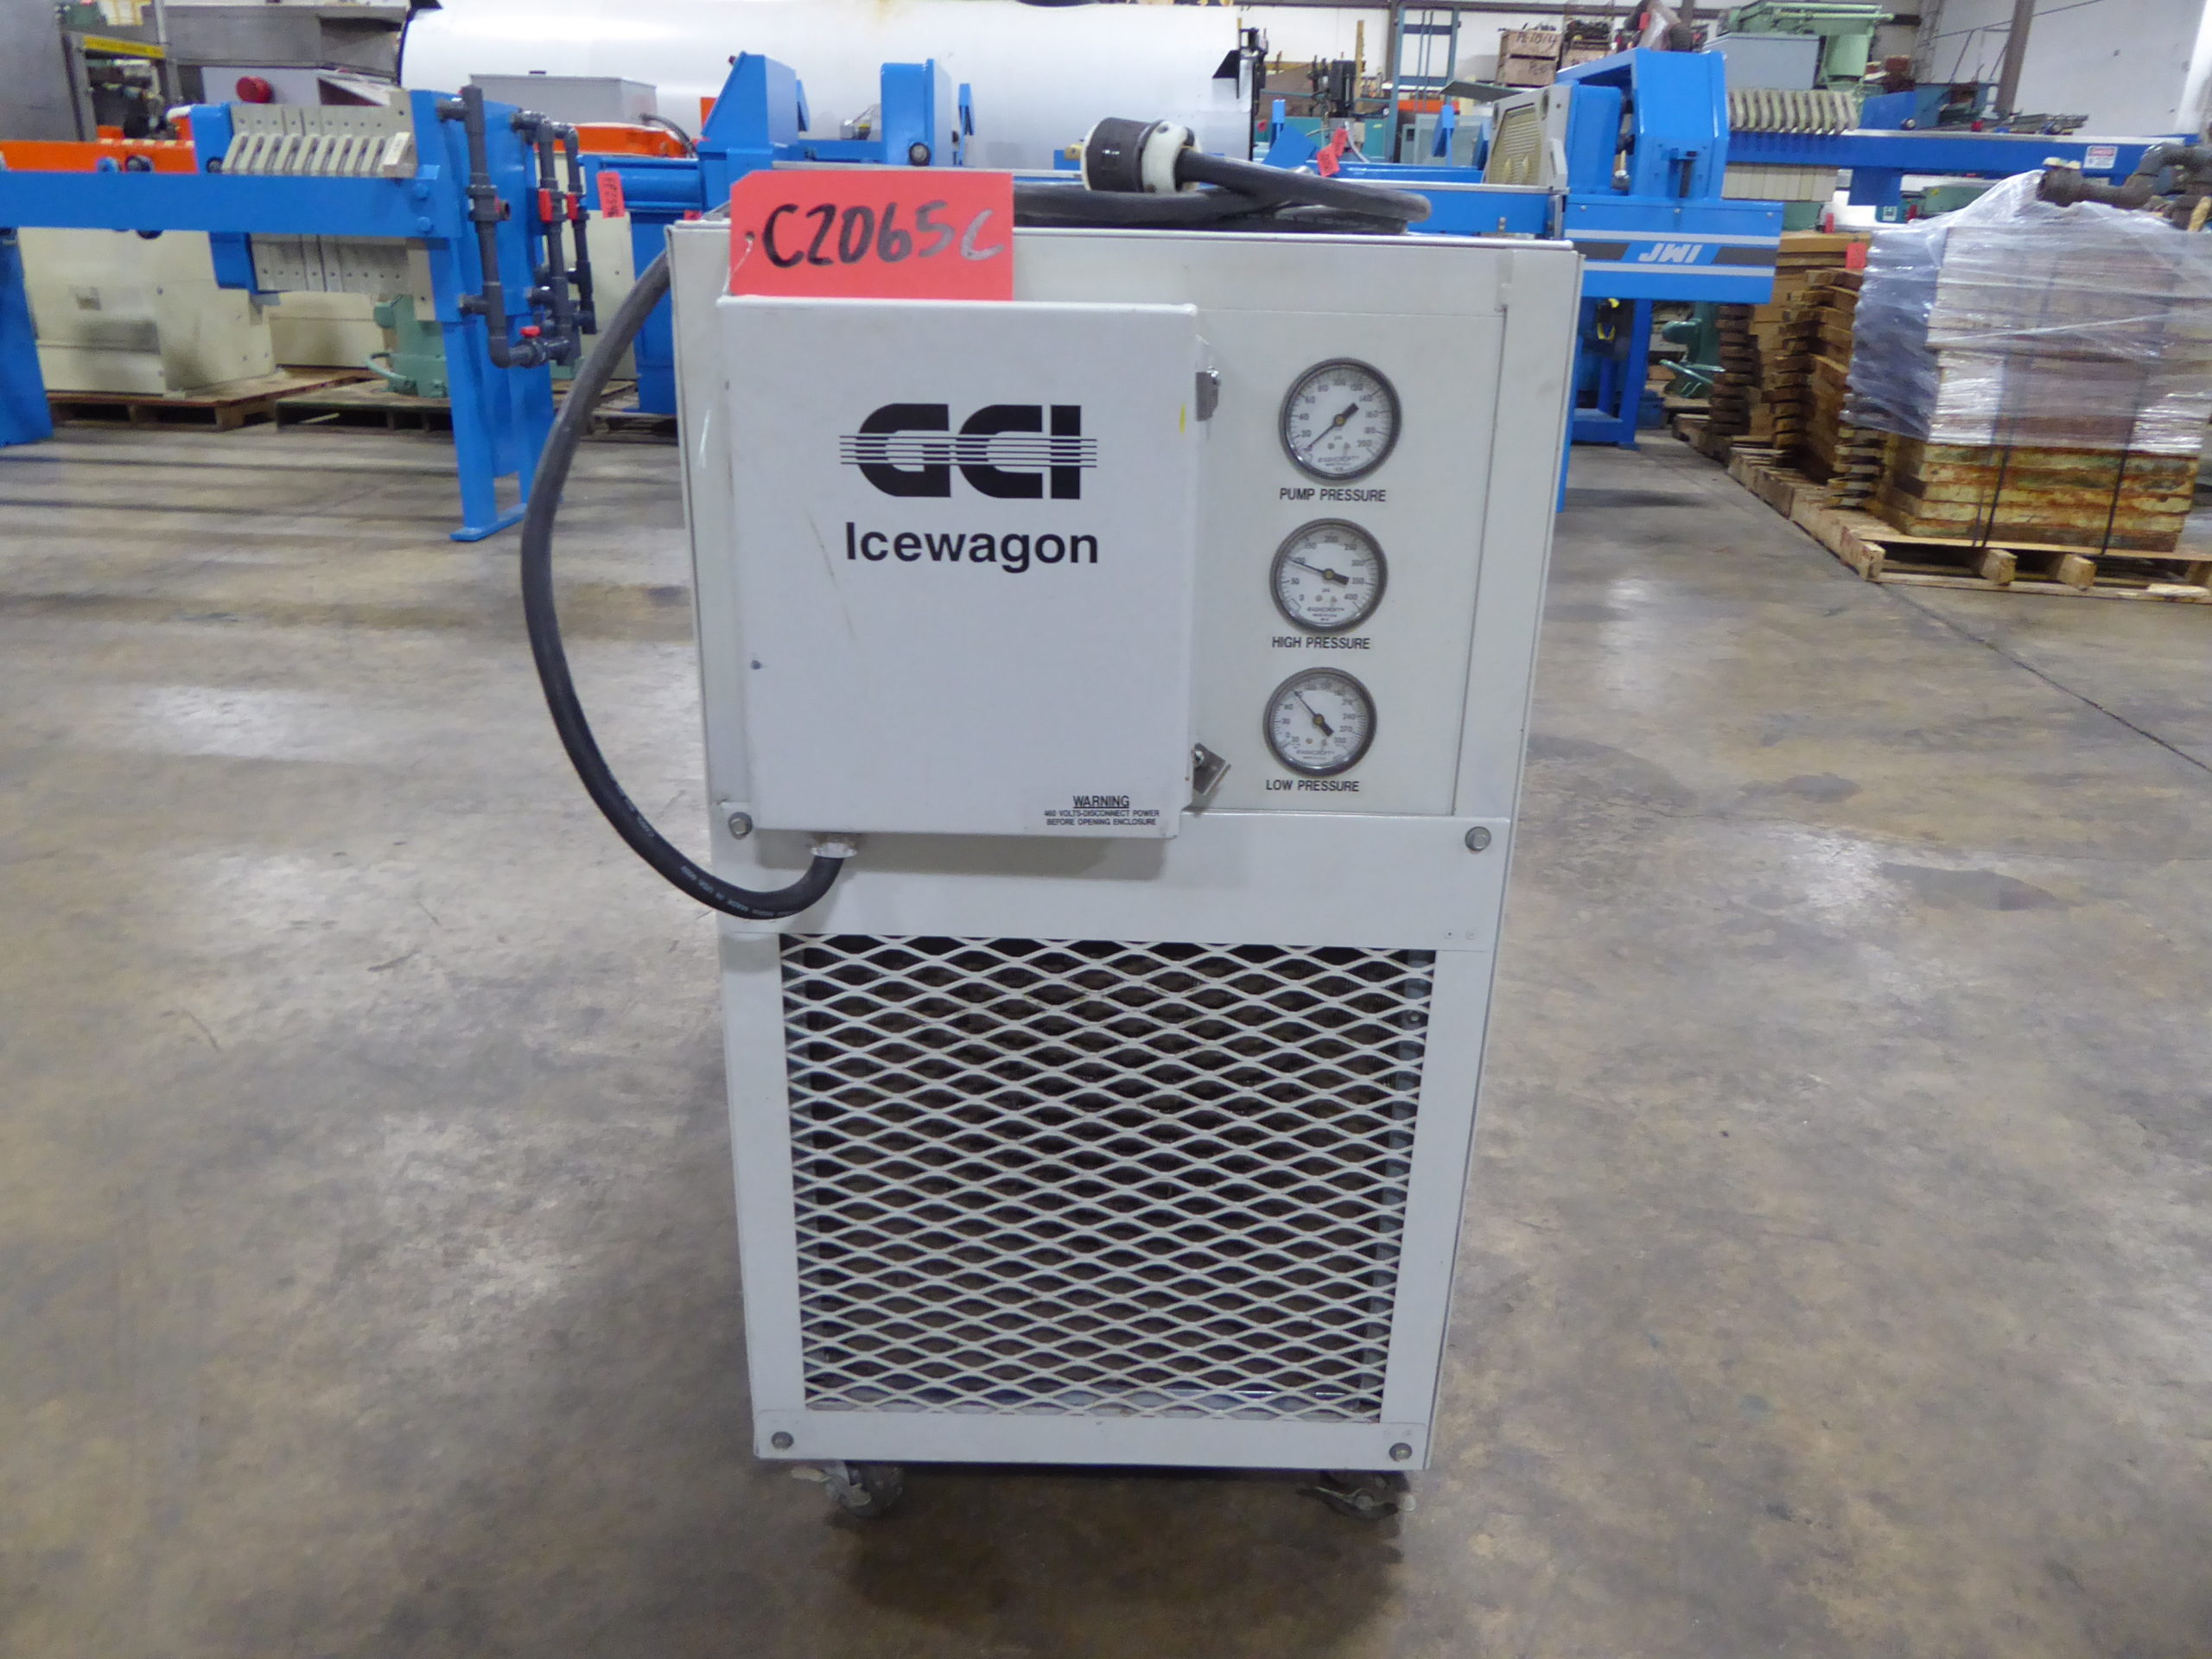 Used Chilling / Cooling Tower - Ice Wagon Portable Chiller C2065C-Chilling & Cooling Towers